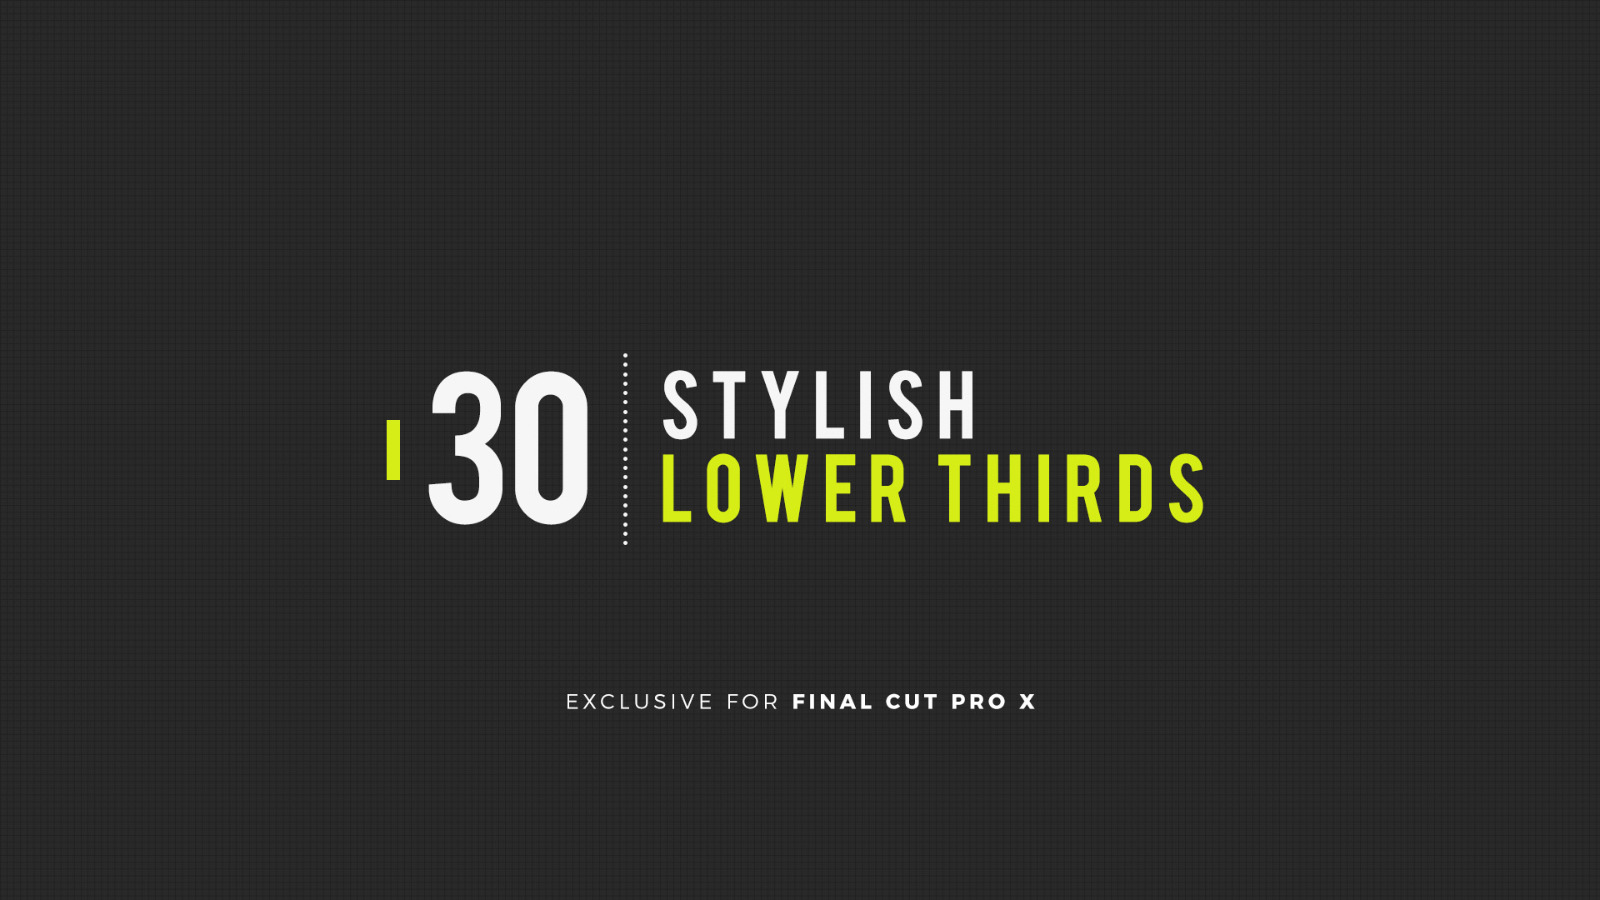 30 Stylish Lower Thirds